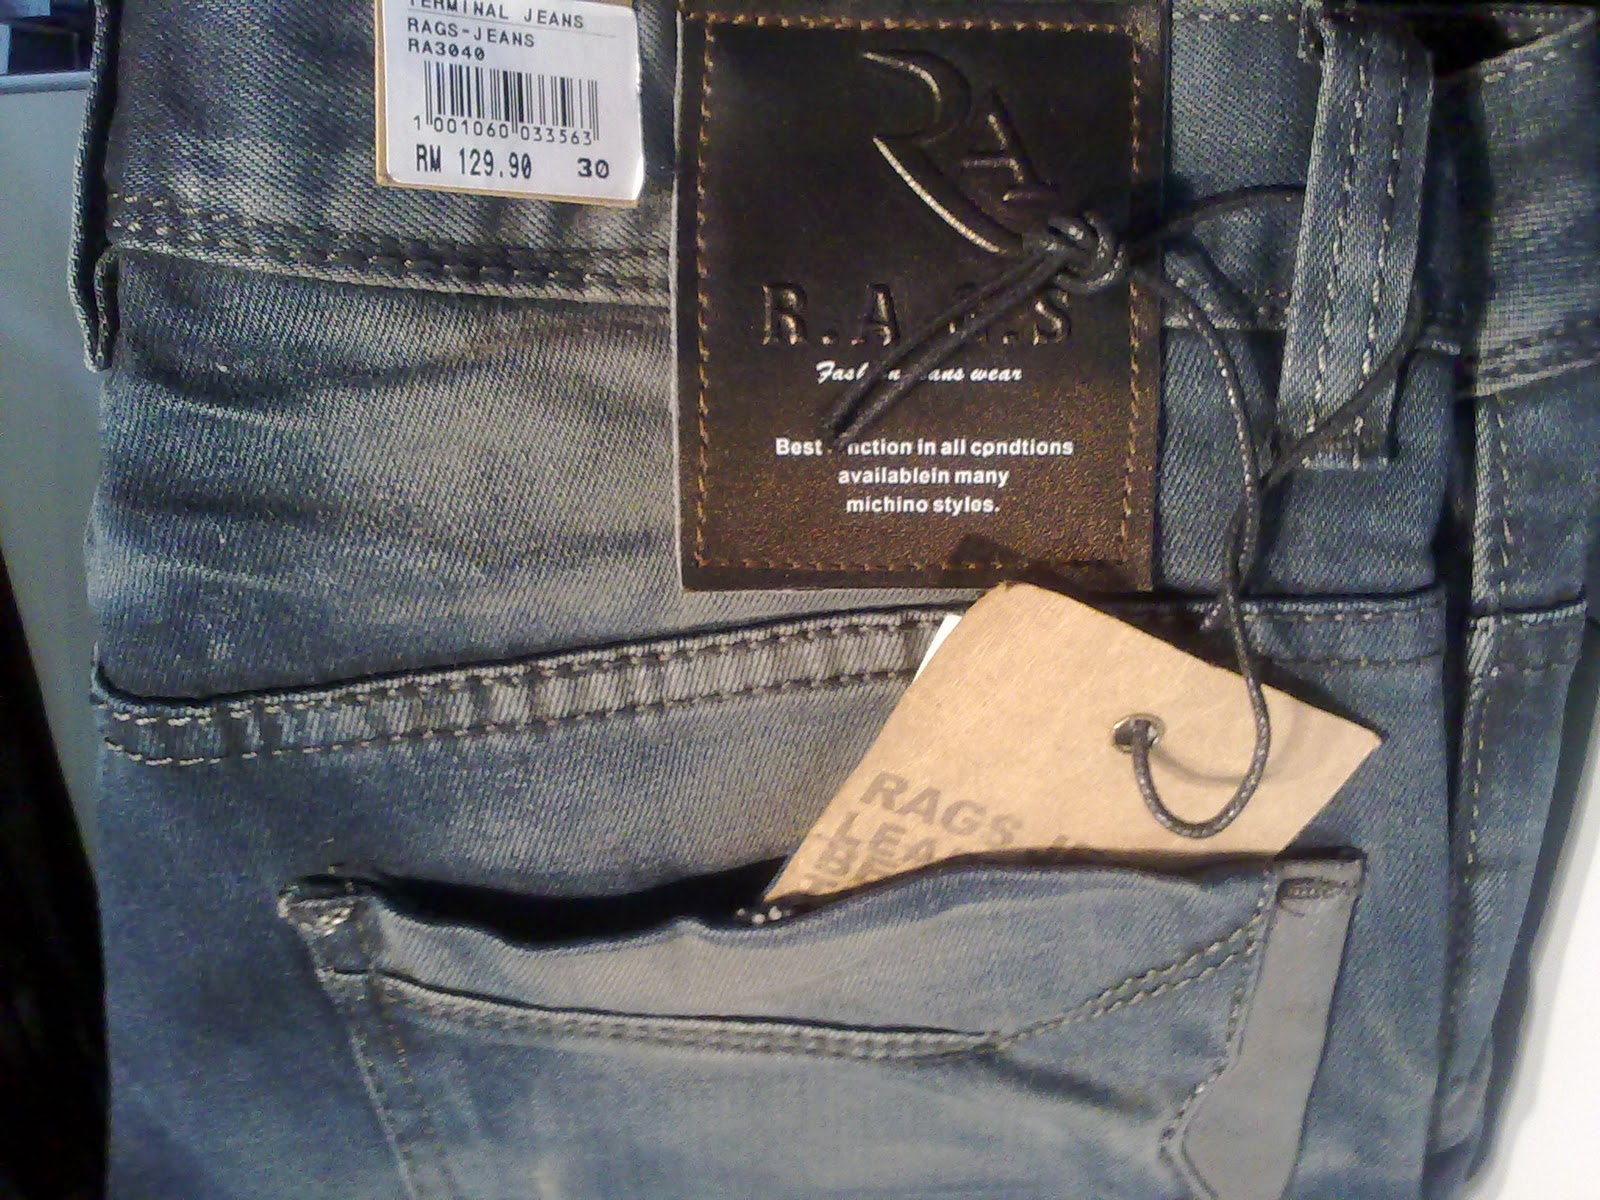 a0ed2dc5 Terminal Jeans Jeans...and more: RAGS JEANS